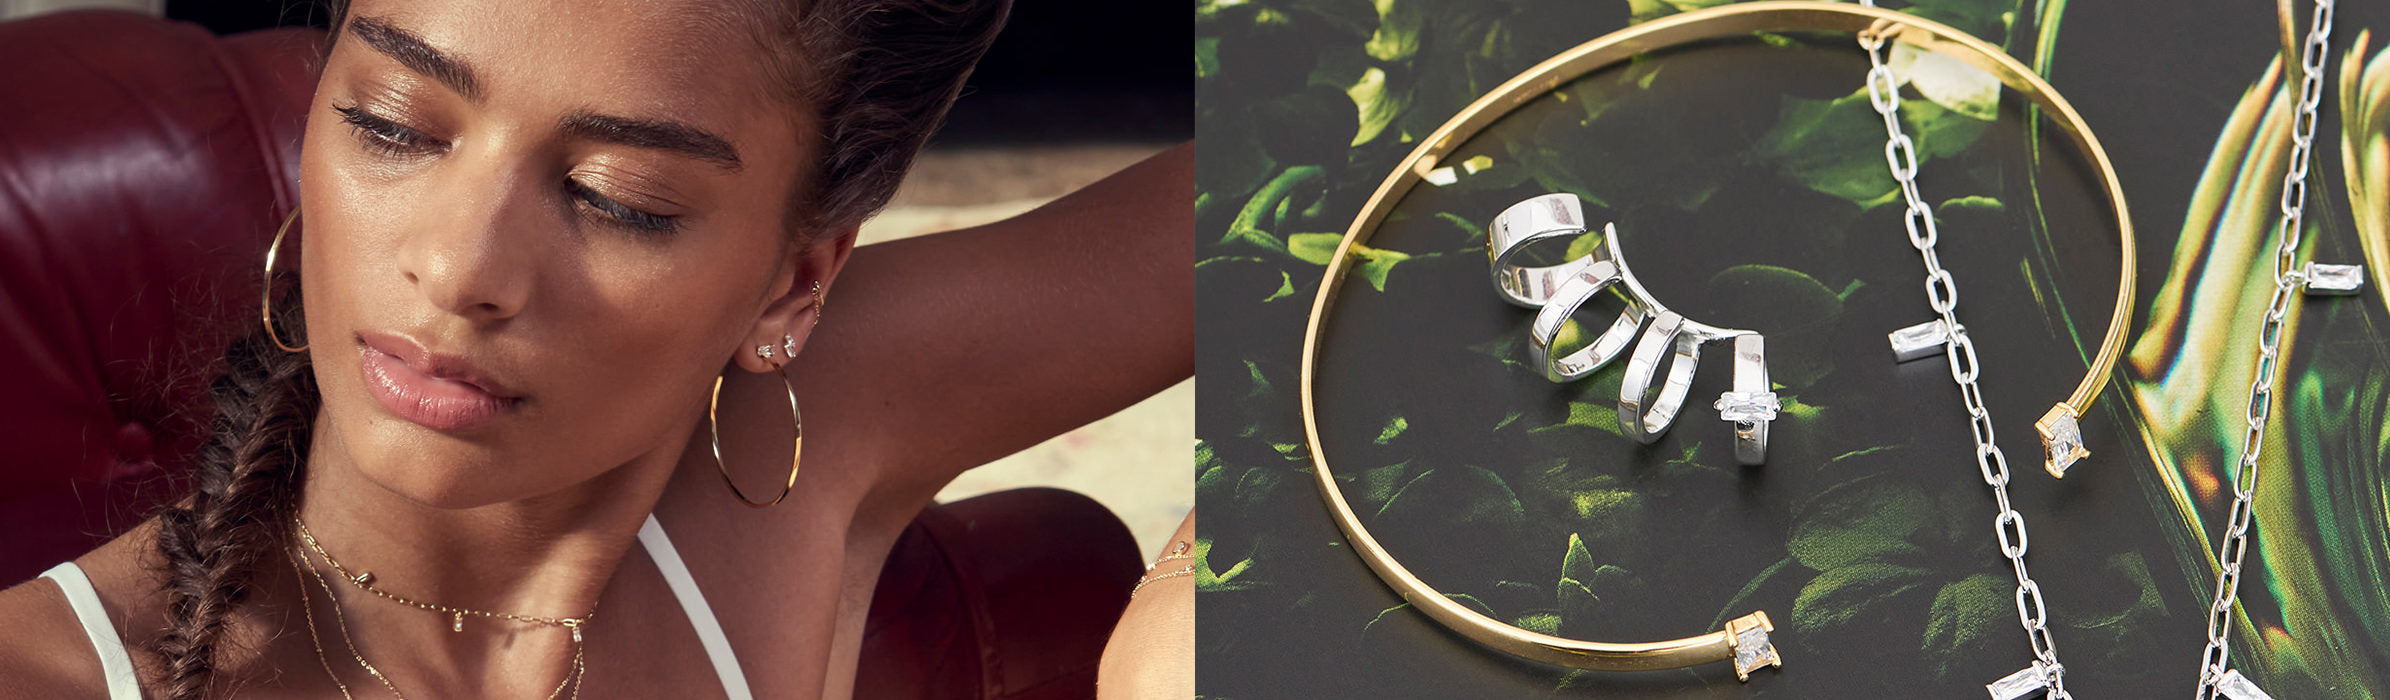 Glow Getter Jewellery Collection by Ania Haie